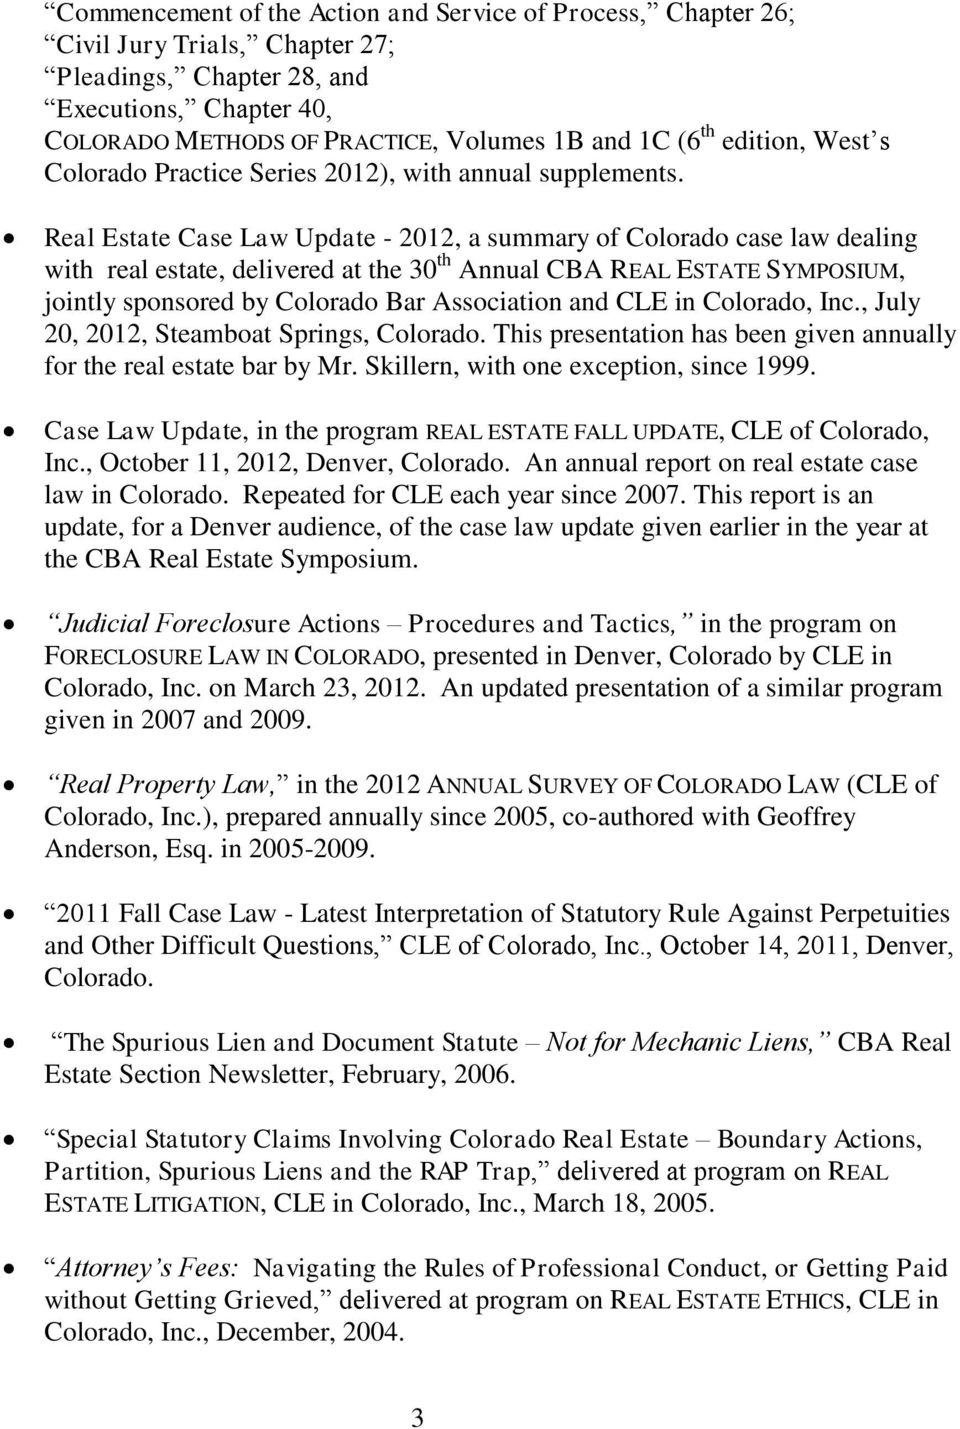 Real Estate Case Law Update - 2012, a summary of Colorado case law dealing with real estate, delivered at the 30 th Annual CBA REAL ESTATE SYMPOSIUM, jointly sponsored by Colorado Bar Association and